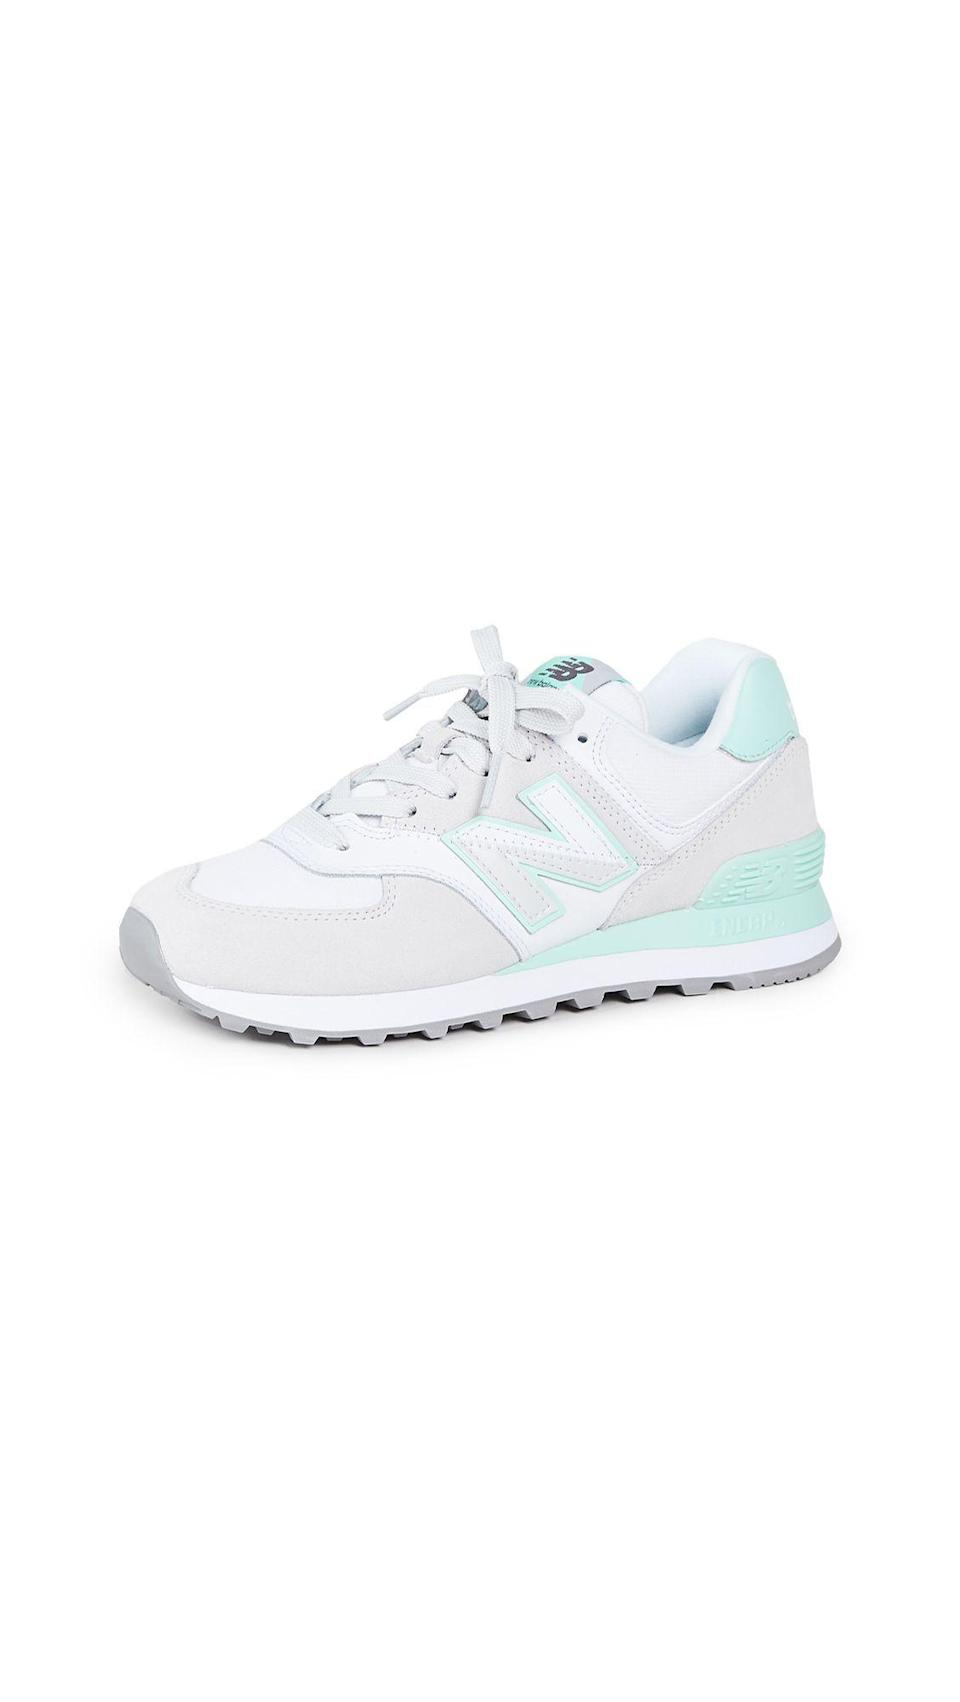 "<p><strong>New Balance</strong></p><p>shopbop.com</p><p><strong>$56.00</strong></p><p><a href=""https://go.redirectingat.com?id=74968X1596630&url=https%3A%2F%2Fwww.shopbop.com%2F574-split-sail-sneaker-new%2Fvp%2Fv%3D1%2F1568048225.htm&sref=https%3A%2F%2Fwww.elle.com%2Ffashion%2Fshopping%2Fg34622053%2Fshopbop-holiday-sale%2F"" rel=""nofollow noopener"" target=""_blank"" data-ylk=""slk:Shop Now"" class=""link rapid-noclick-resp"">Shop Now</a></p>"